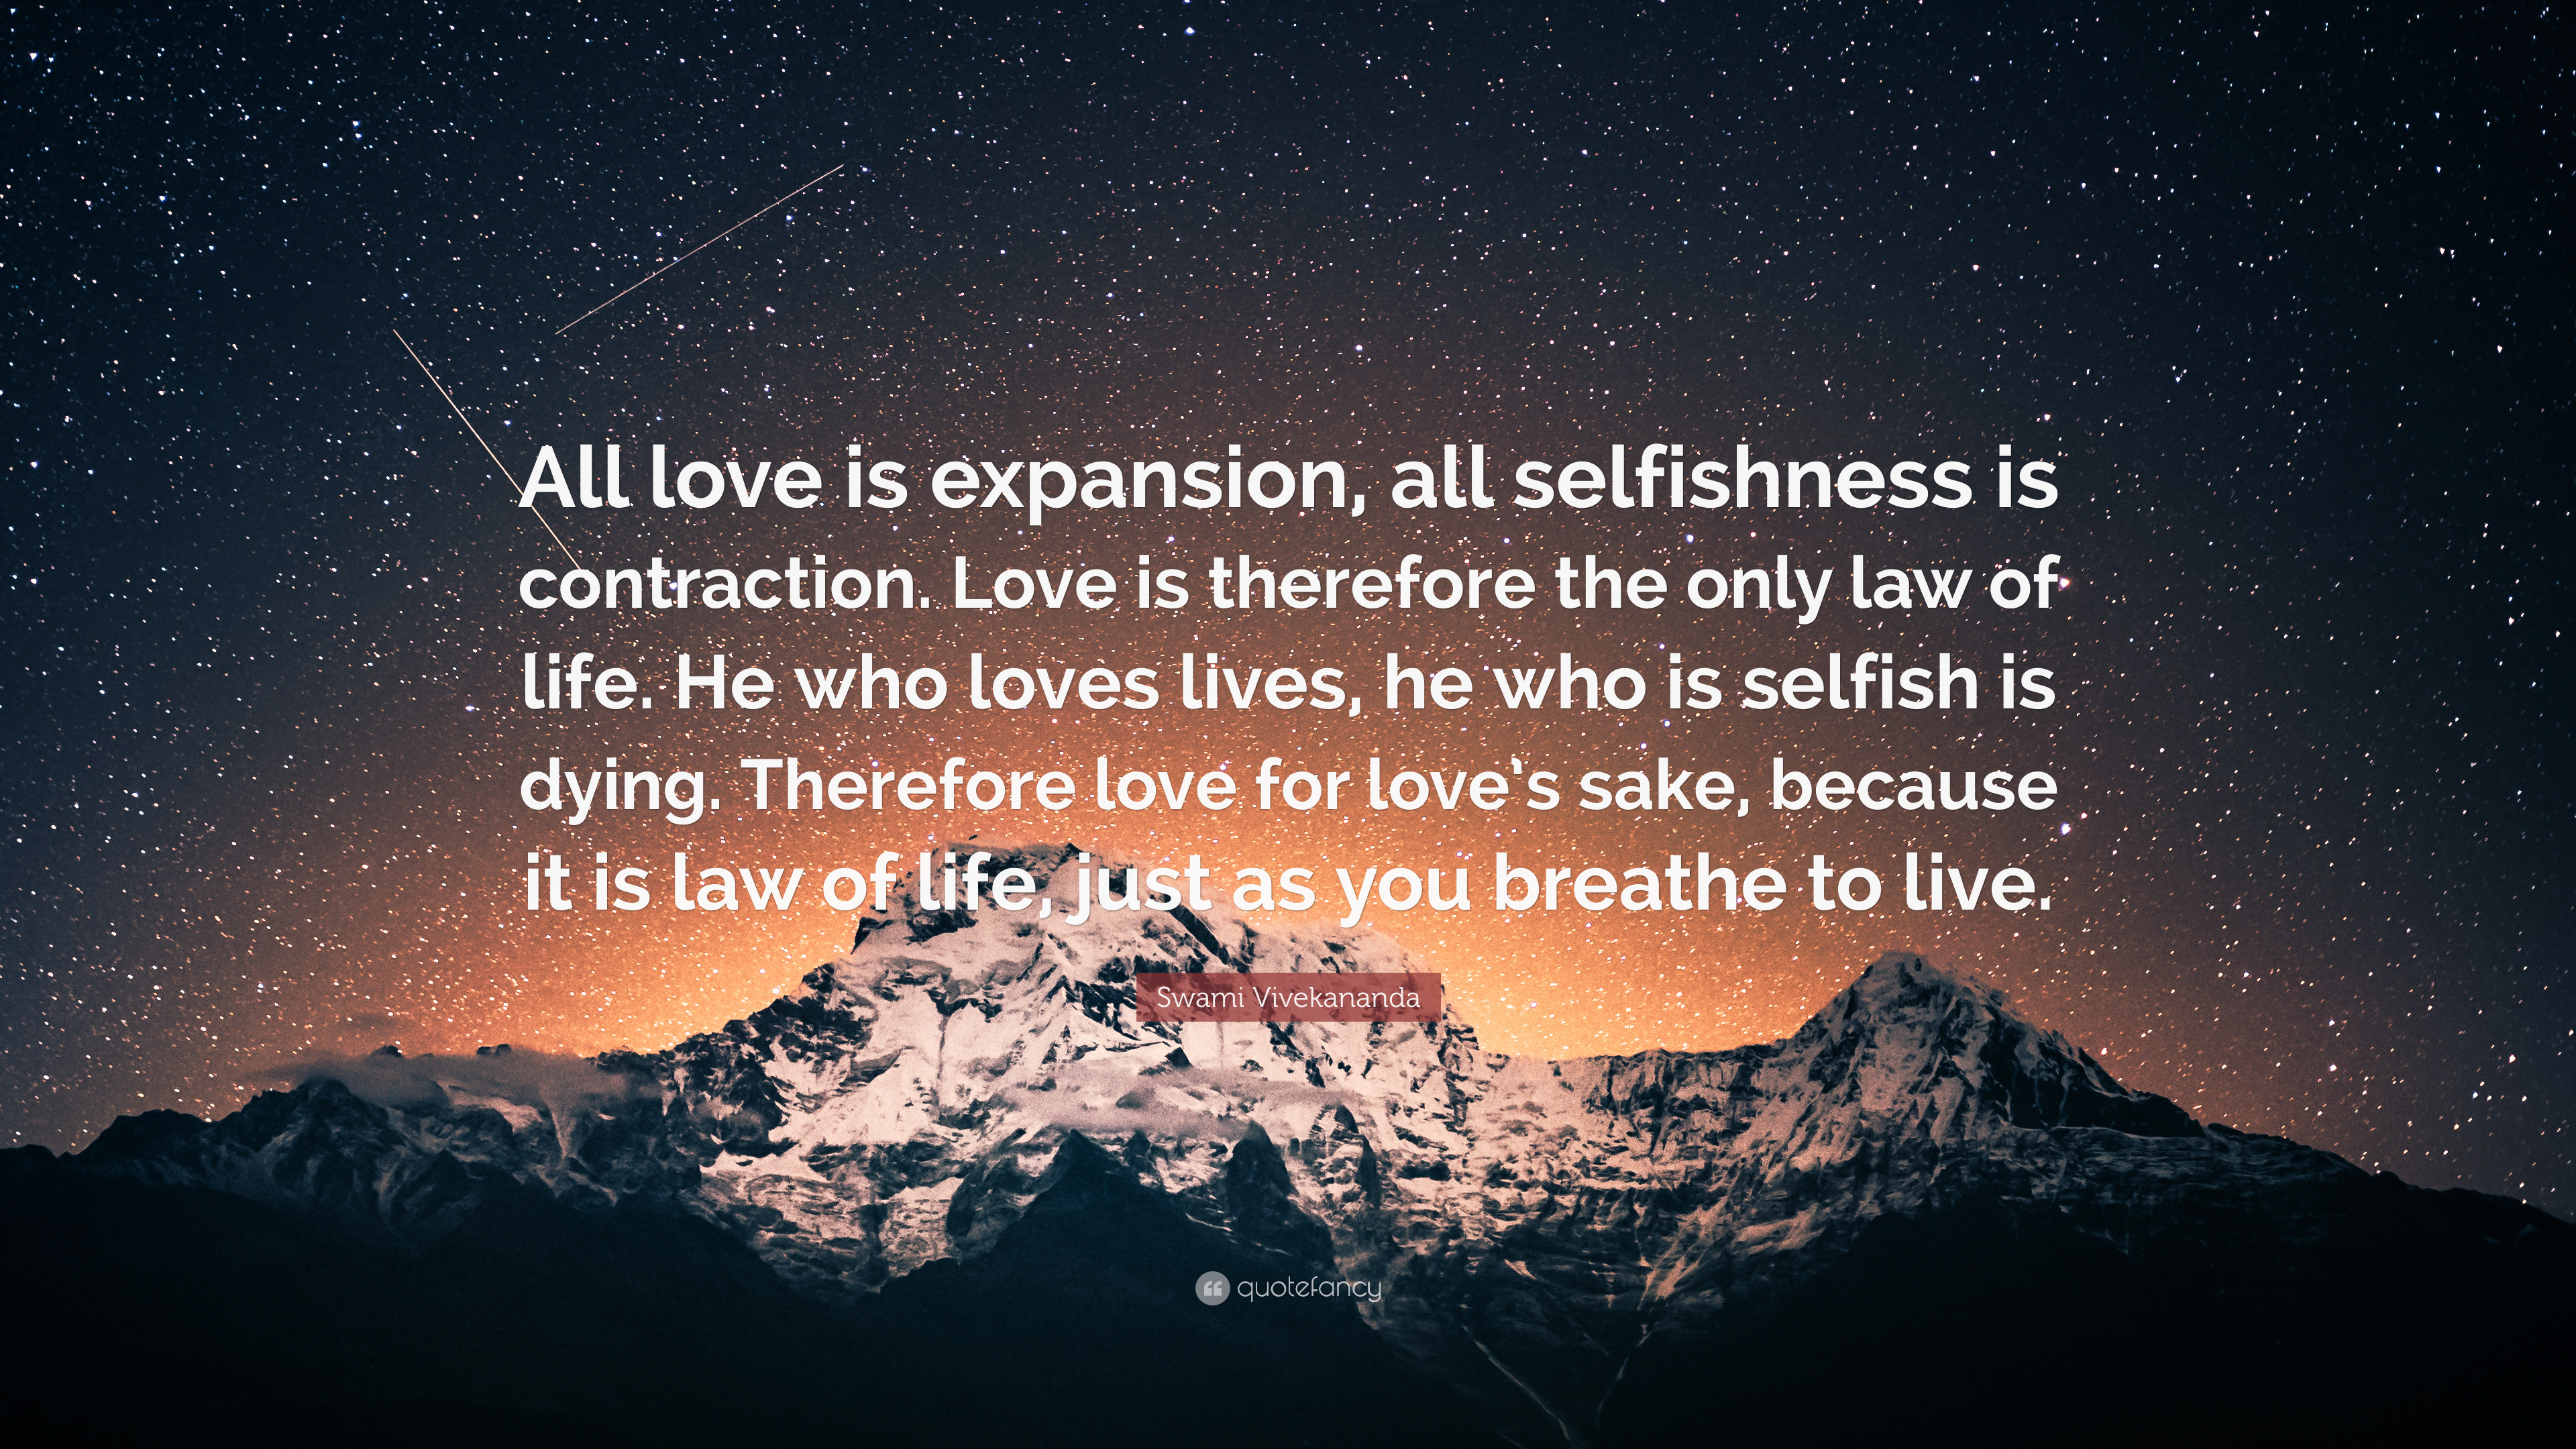 Swami Vivekananda Quote All Love Is Expansion All Selfishness Is Contraction Love Is Therefore The Only Law Of Life He Who Loves Lives He Wh 11 Wallpapers Quotefancy